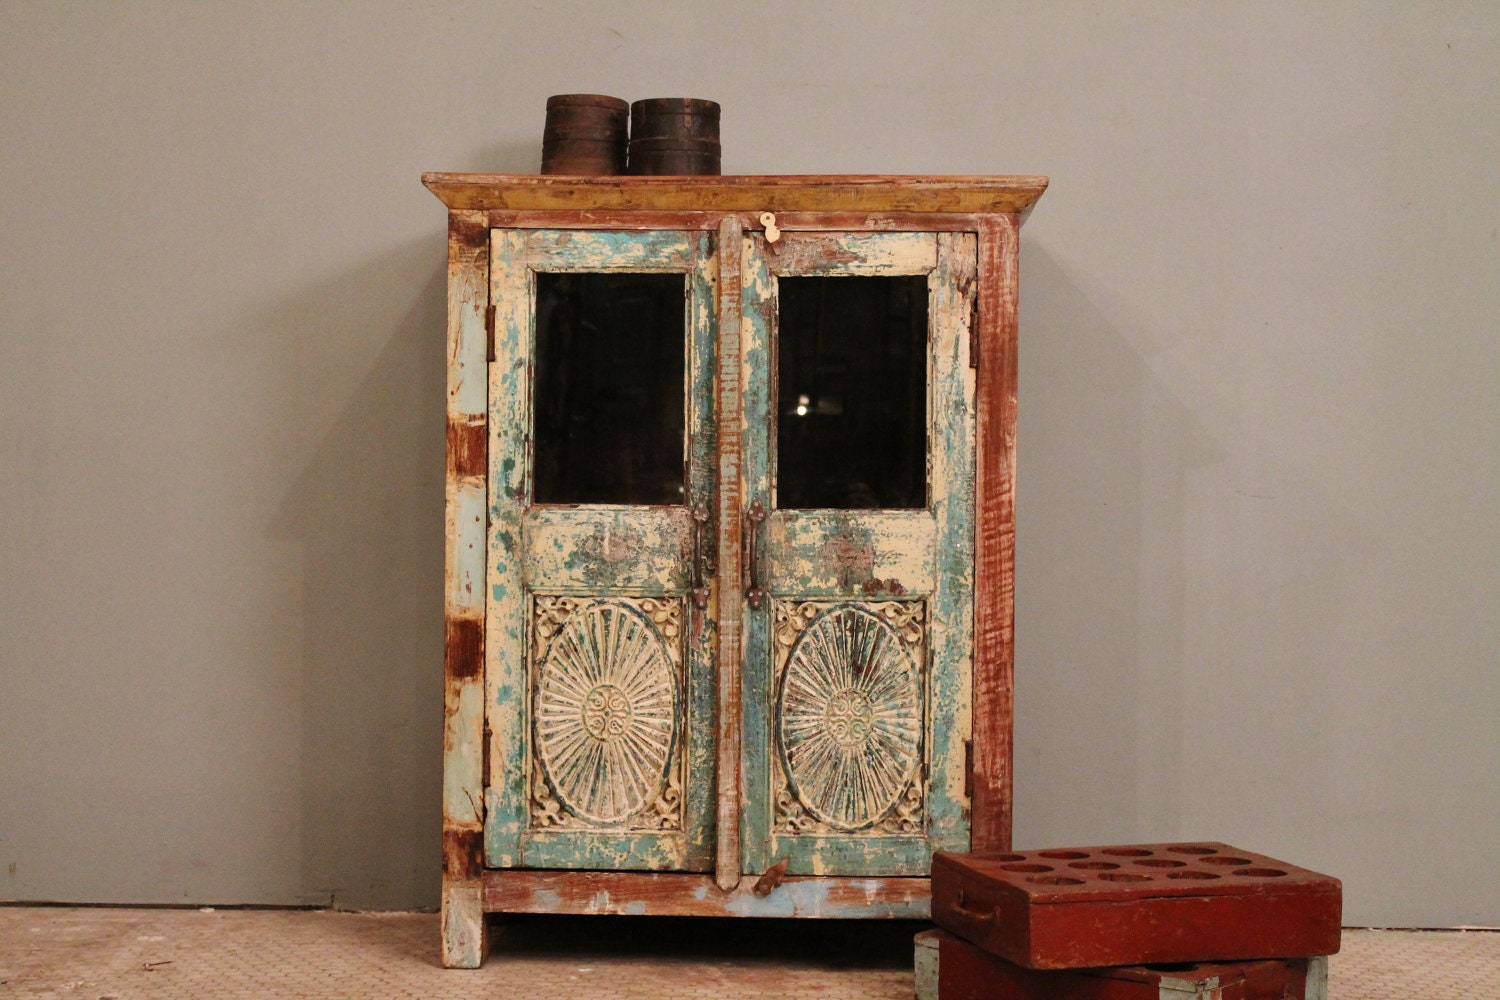 Antique Storage Cabinets Distressed Turquoise Restored Vintage Indian Glass Storage